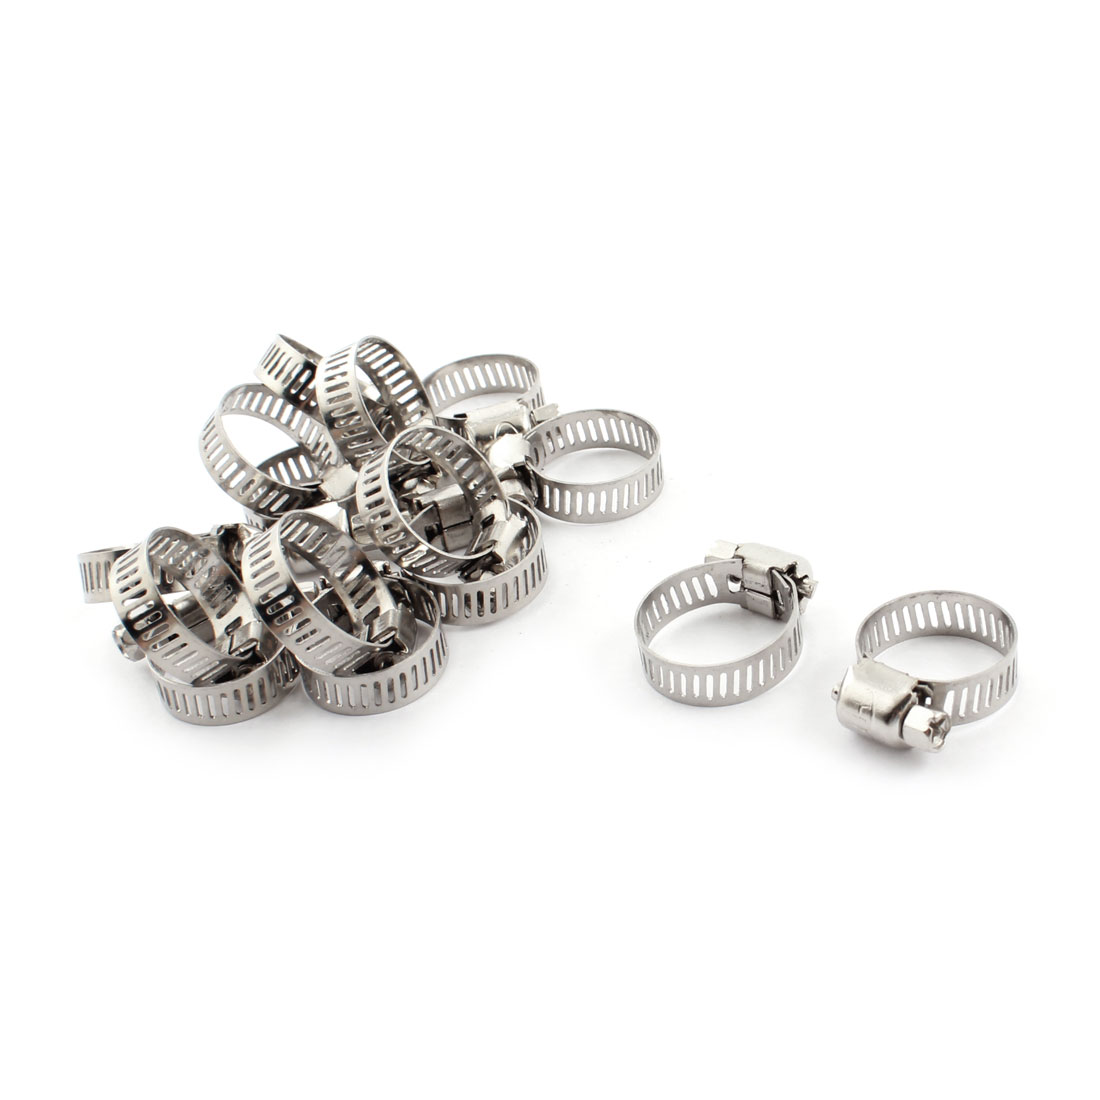 15 PCS 8mm Width 13-19mm Adjustable Metal Drive Pipe Tube Worm Gear Hose Clamps Clips